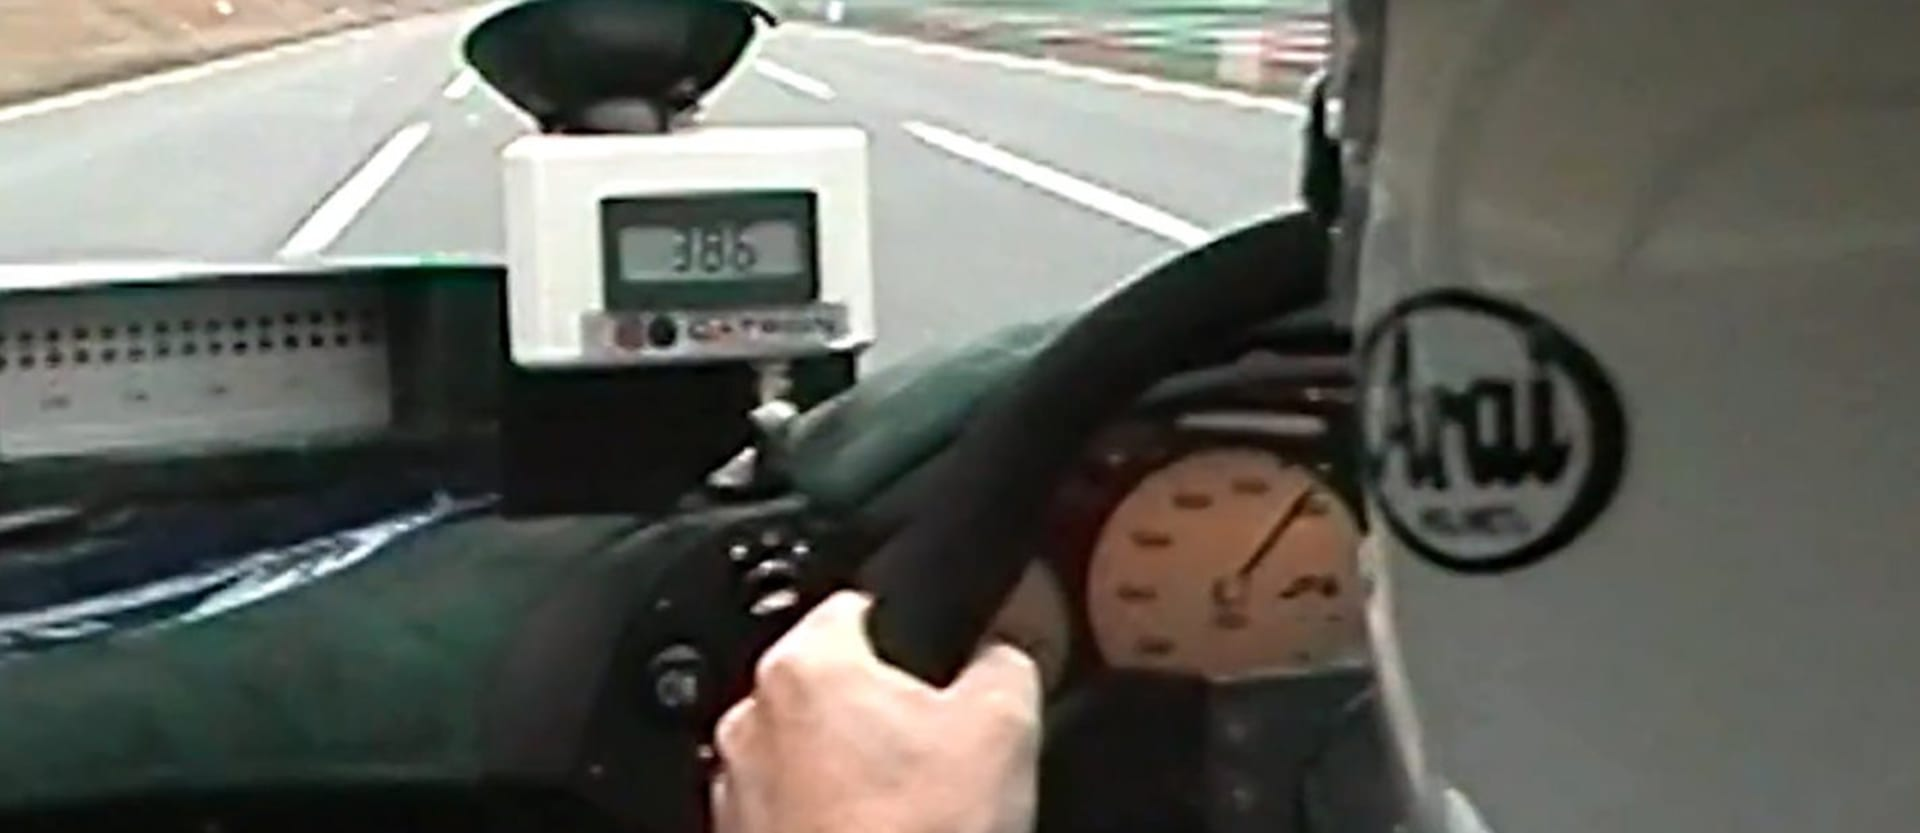 The McLaren F1 sets a production car speed record